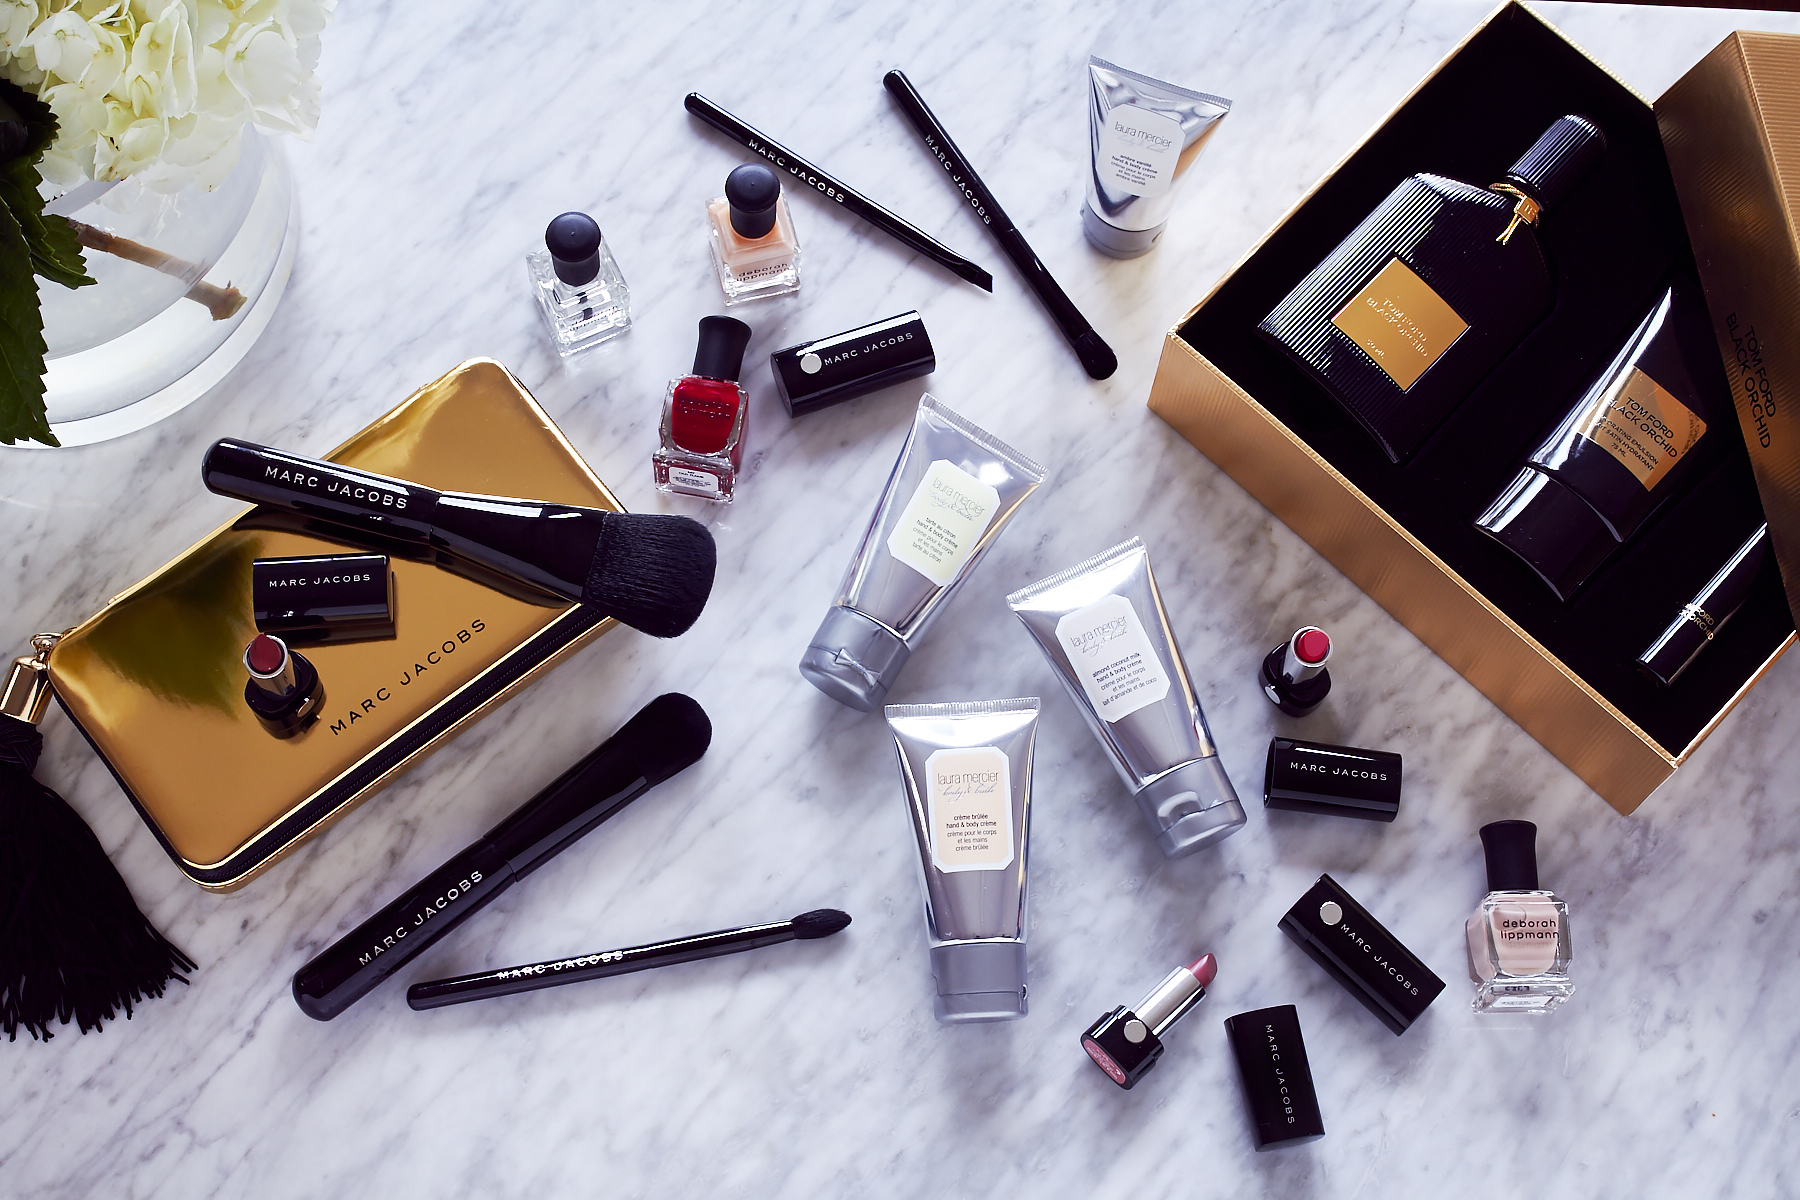 Neiman Marcus Holiday Gifts, Beauty